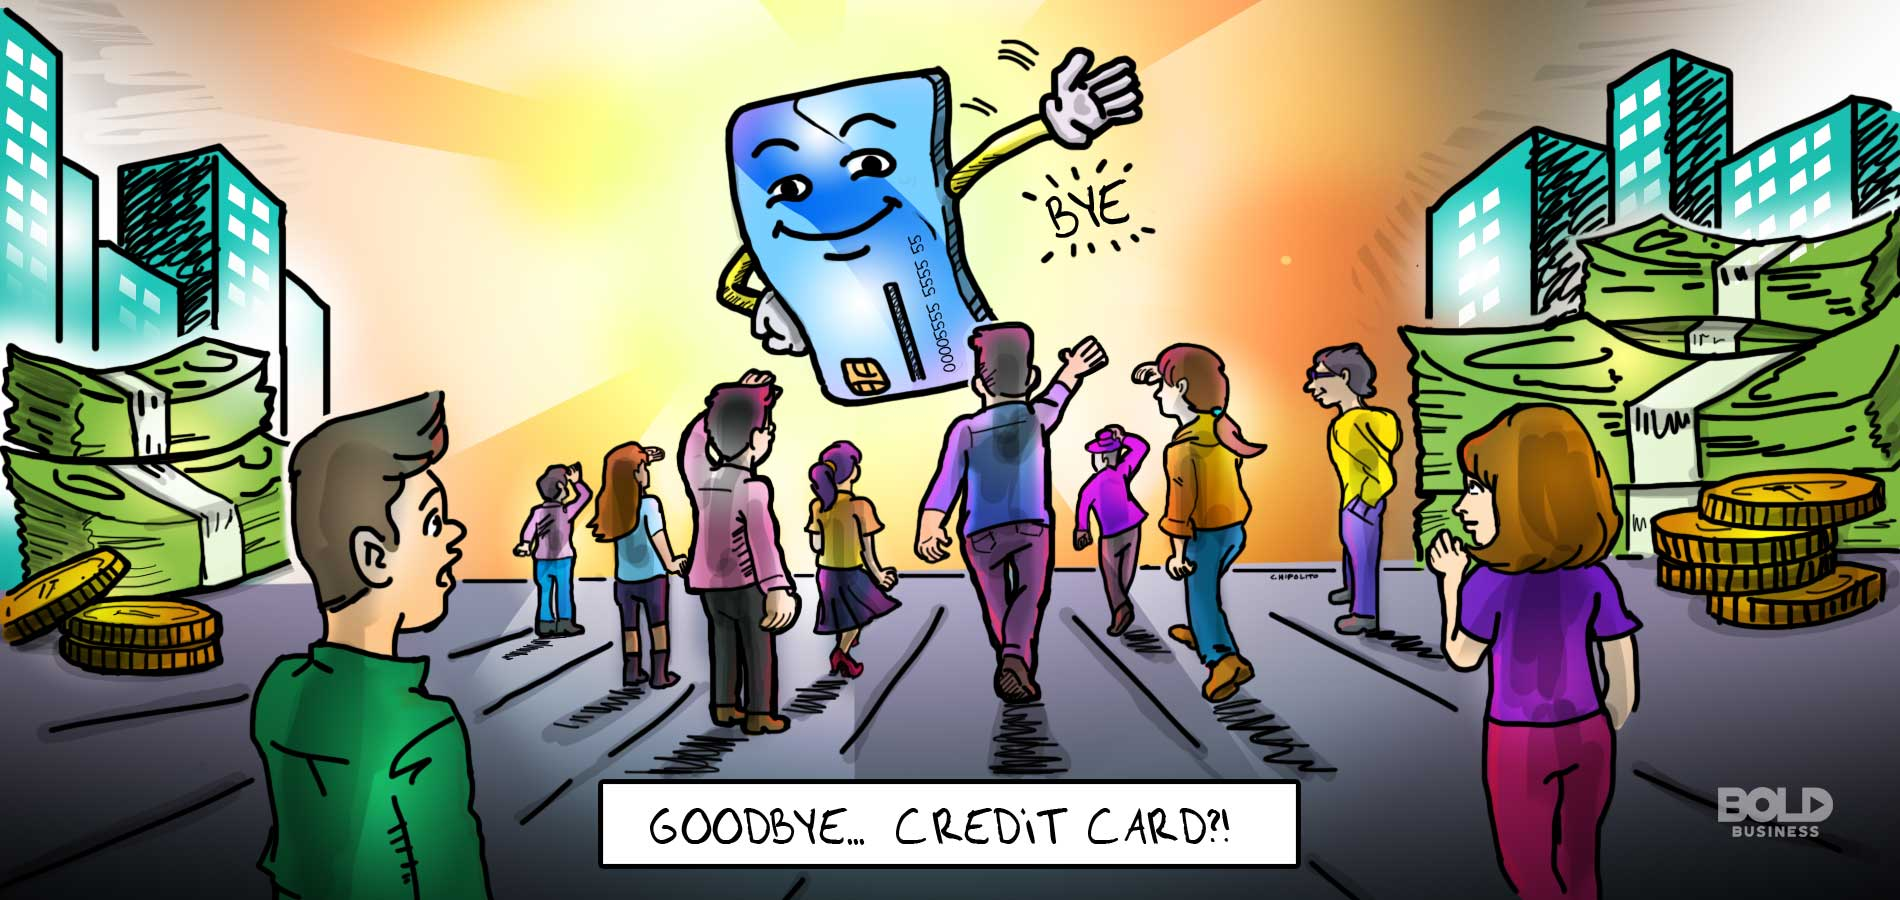 a cartoon of credit card waving goodbye to its users